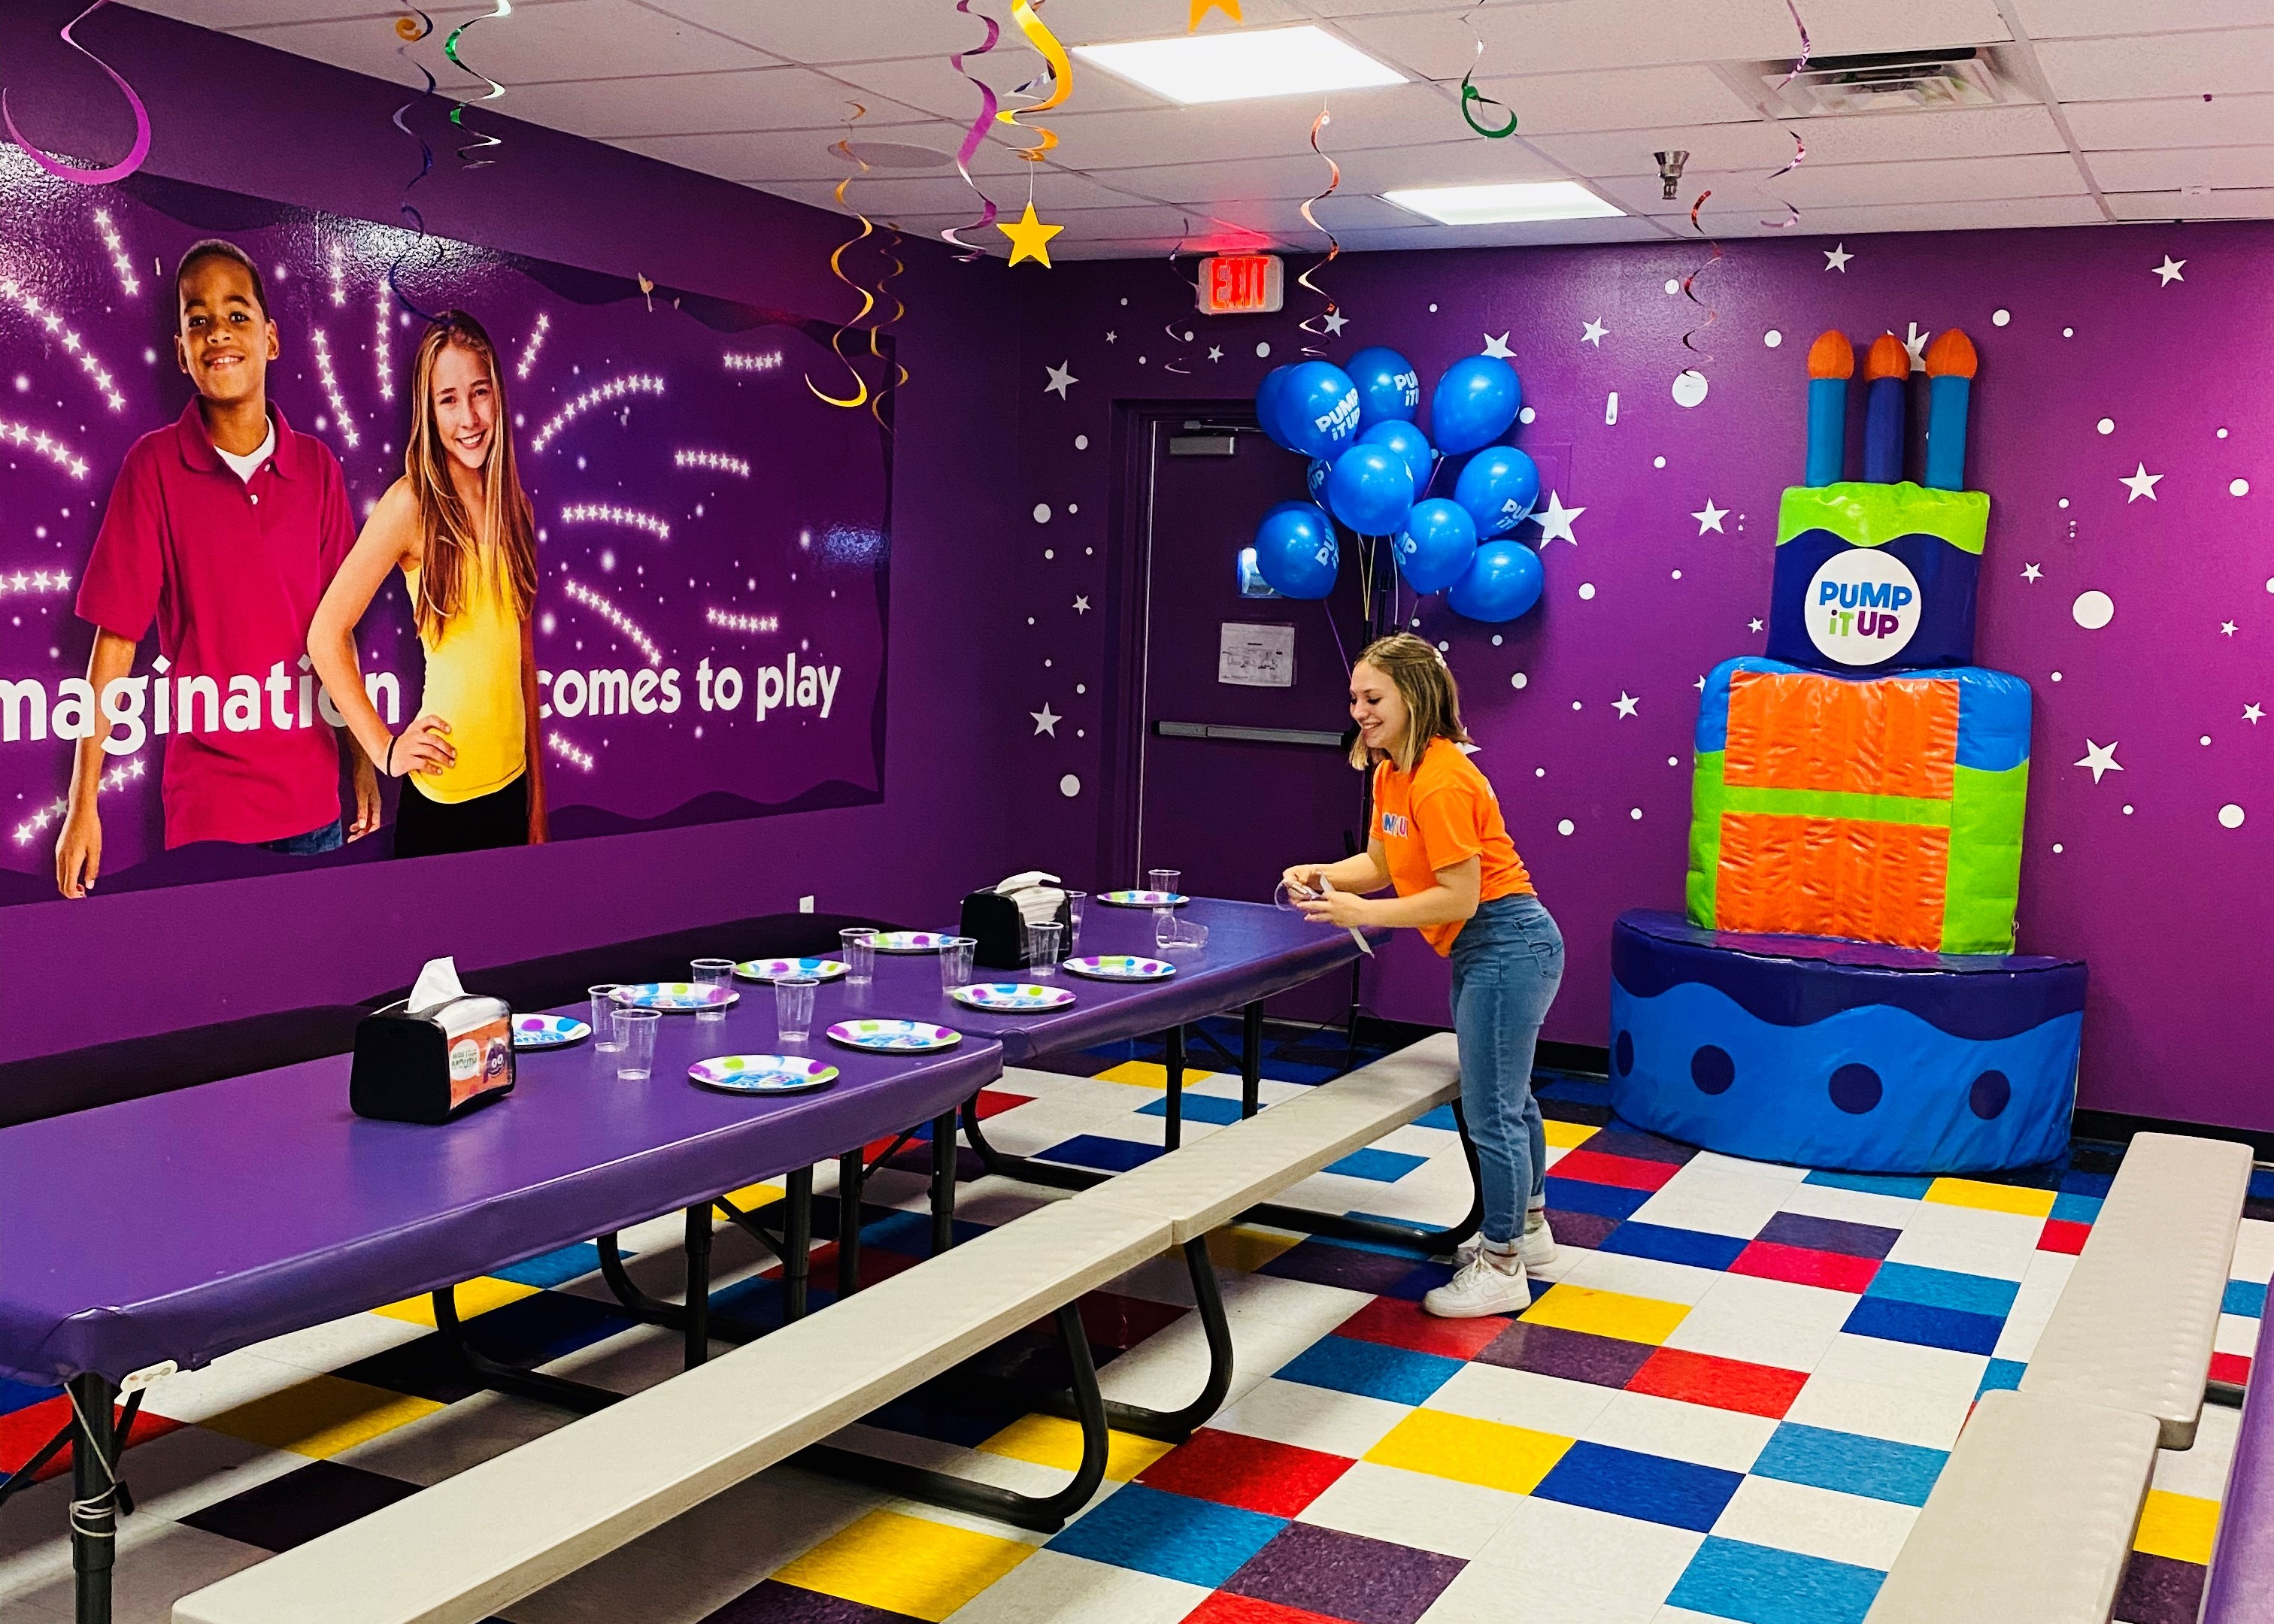 Pump It Up birthday party staff setting up table in private party room and throne for birthday.